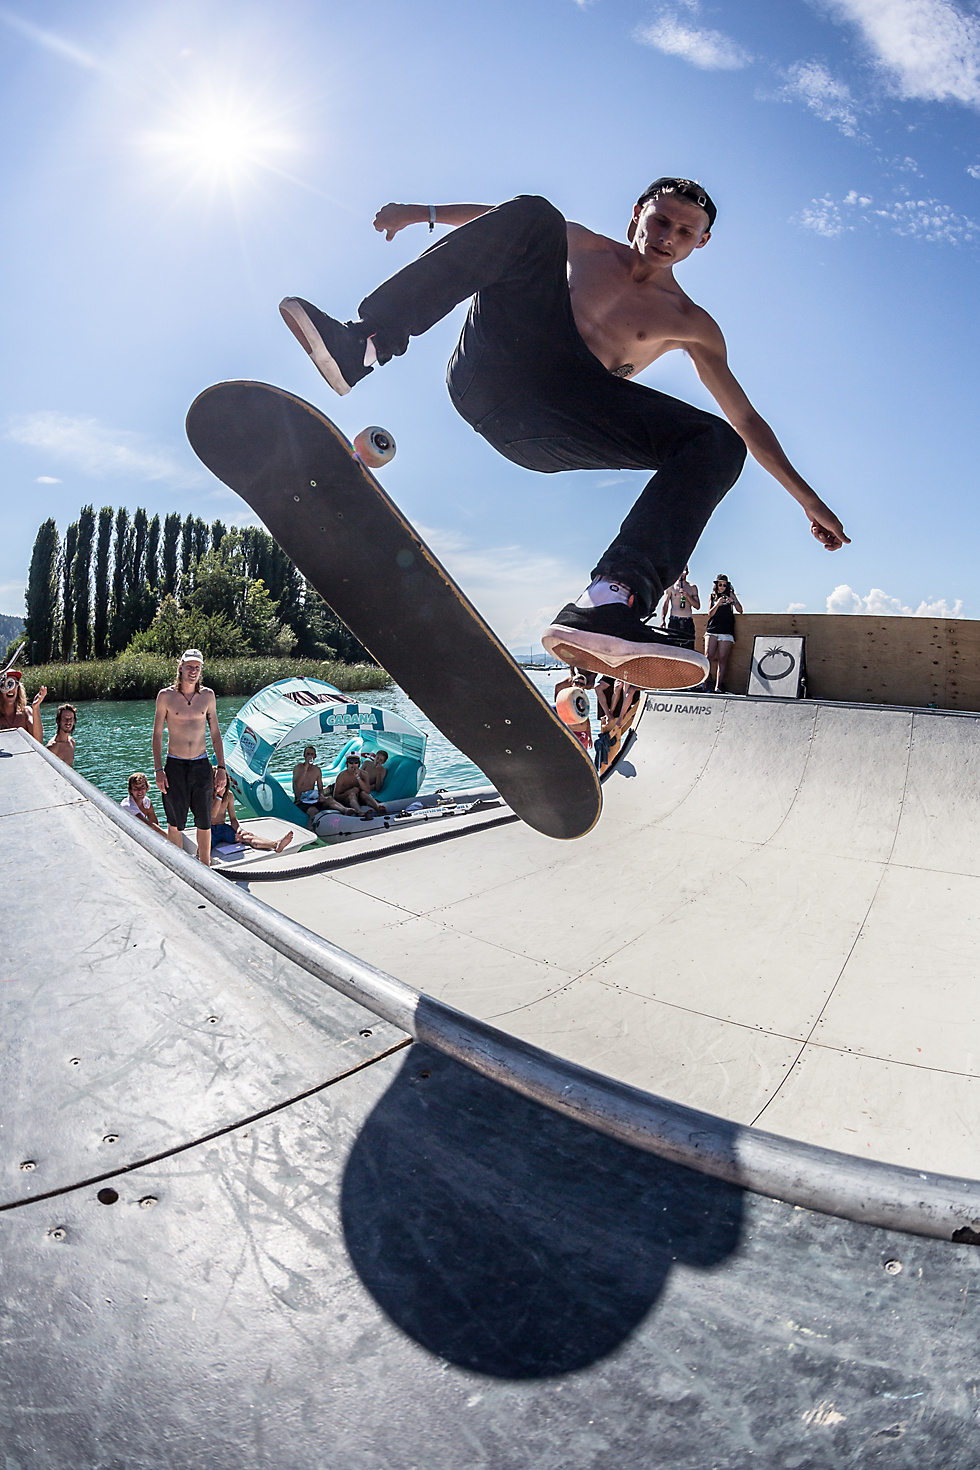 Dannie Carlsen with a massive flip trick